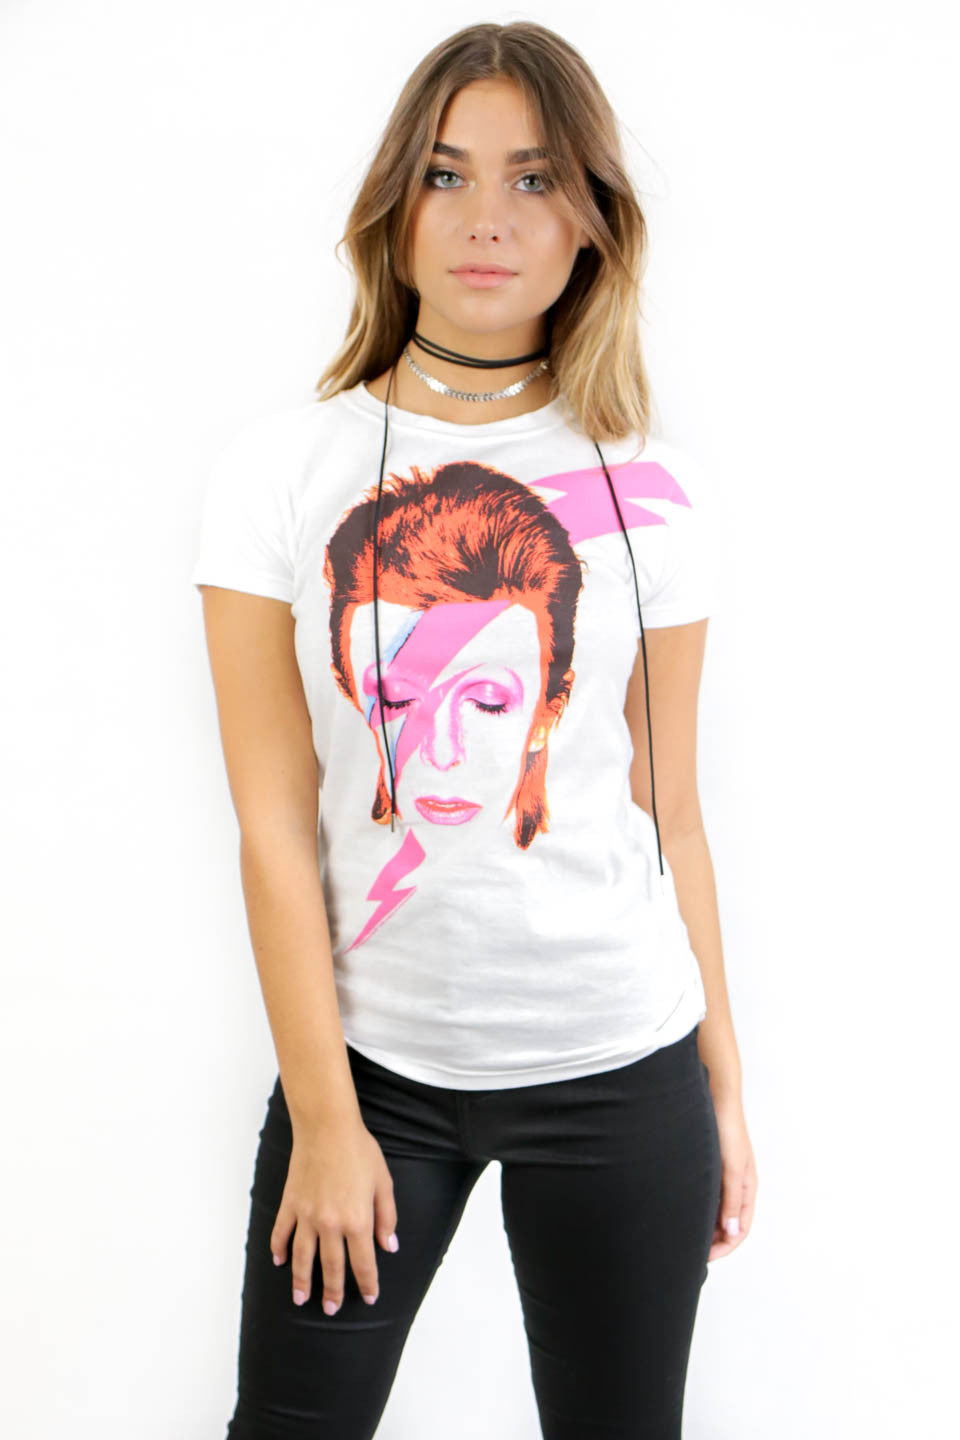 David Bowie Starman Top Band Tee - Amazing Lace